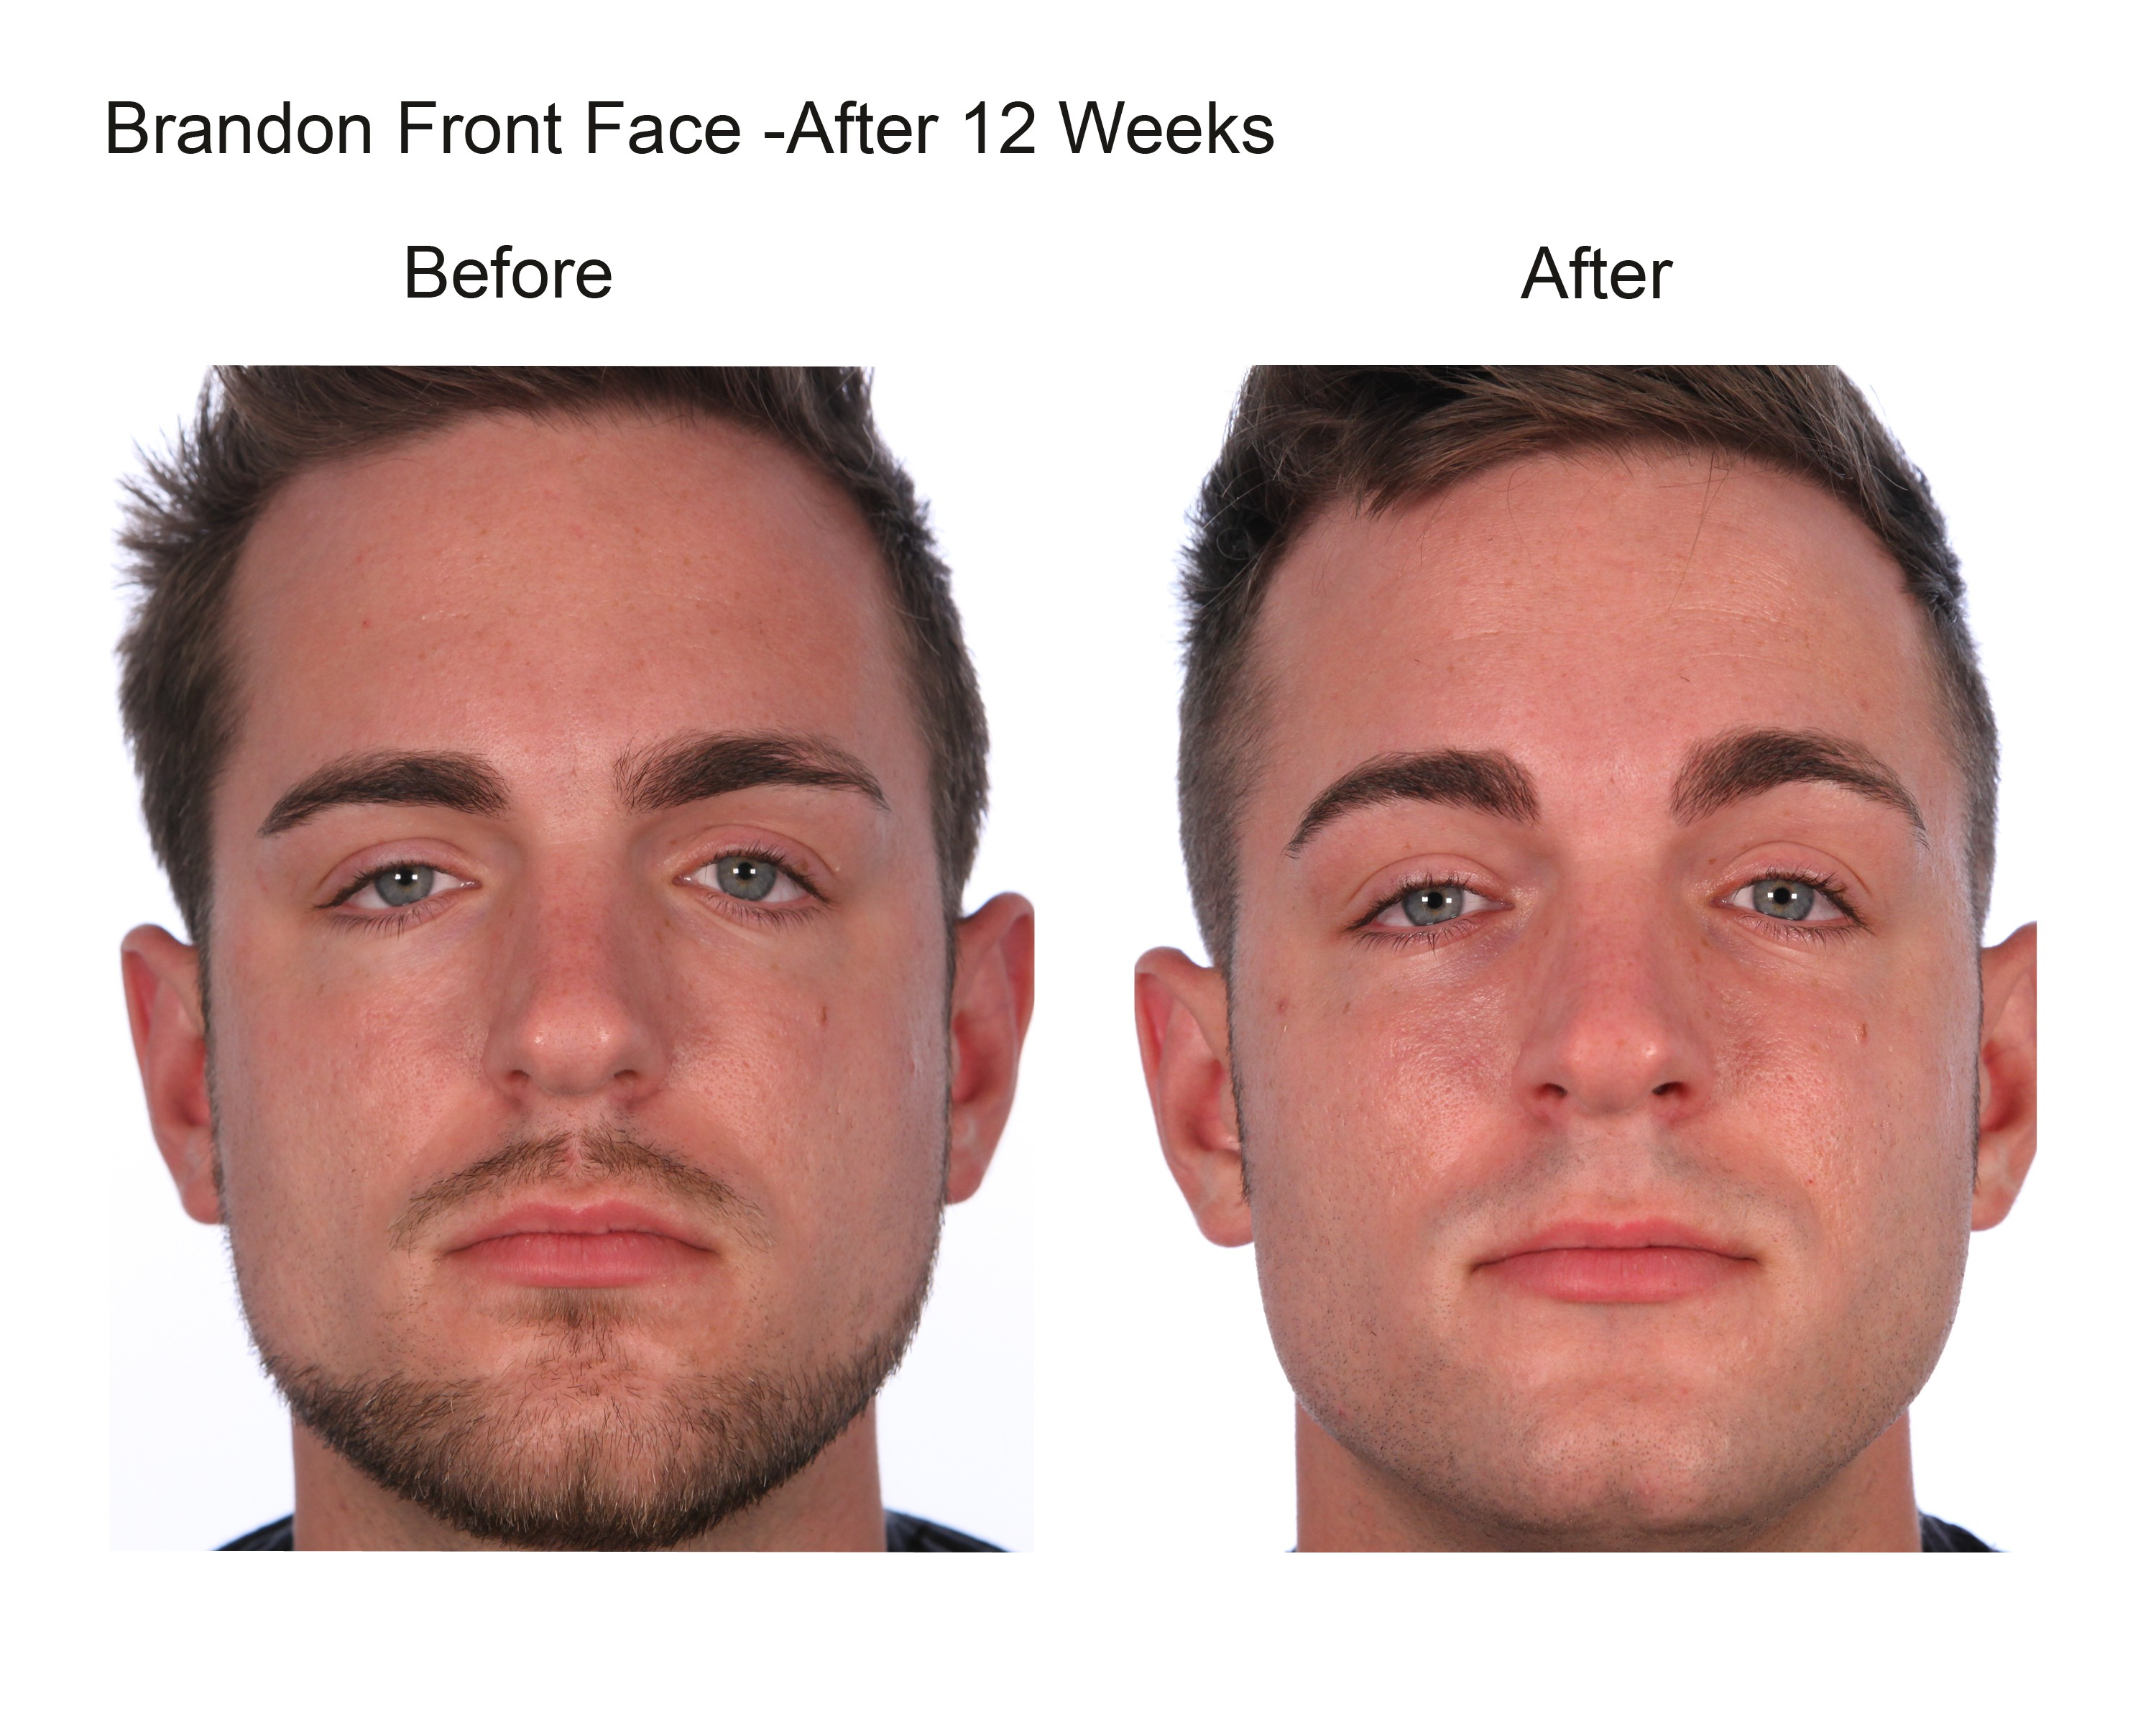 brandon front face after 12 weeks